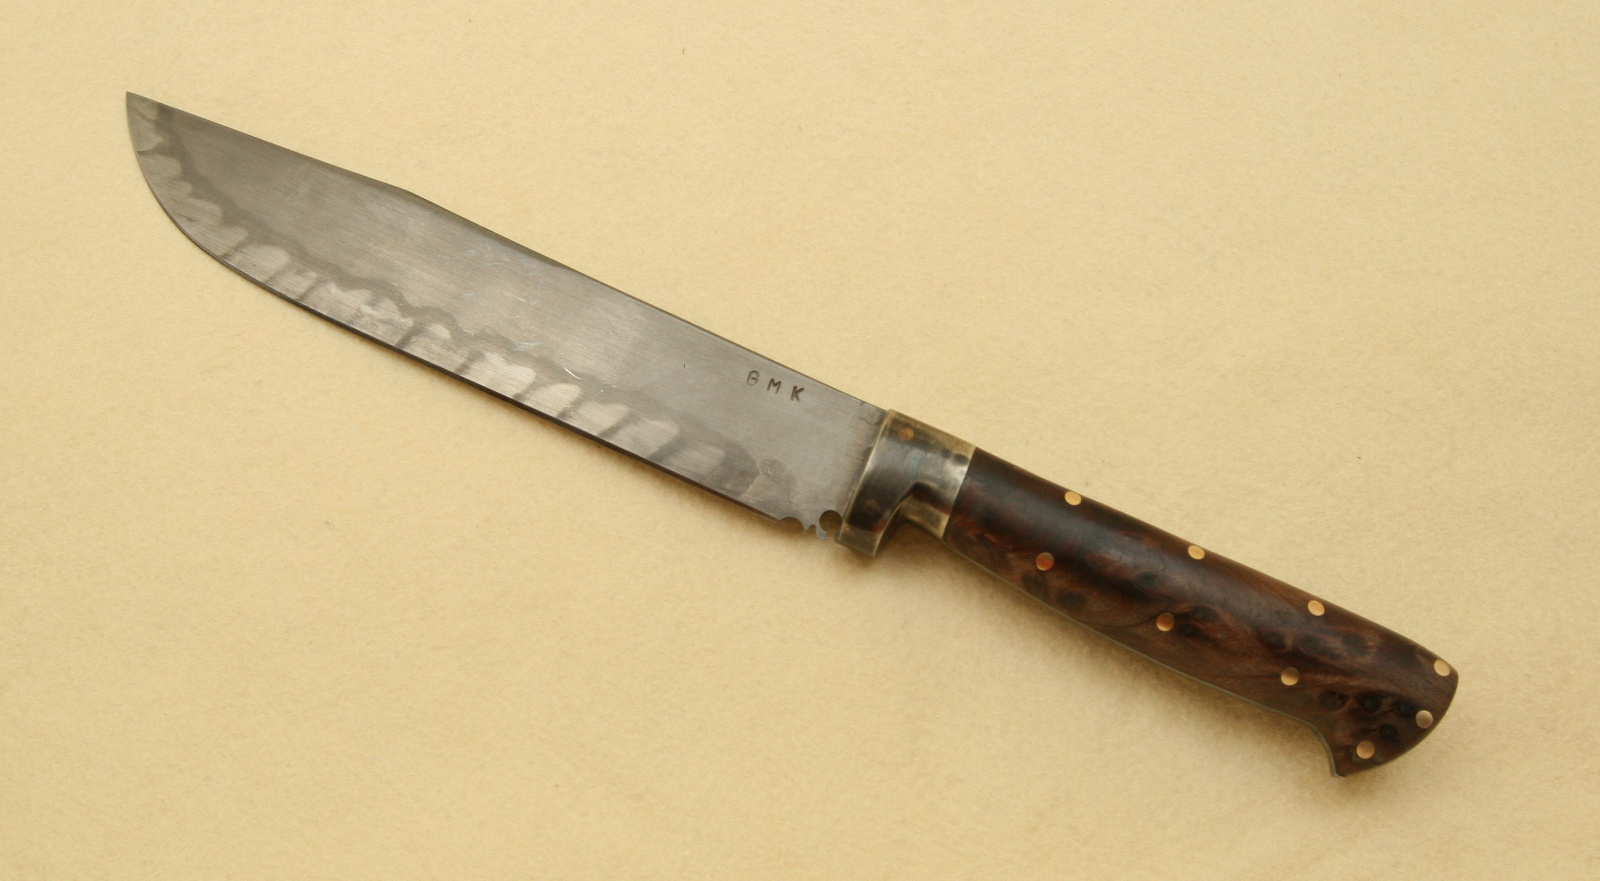 Gray Griffin trade knife